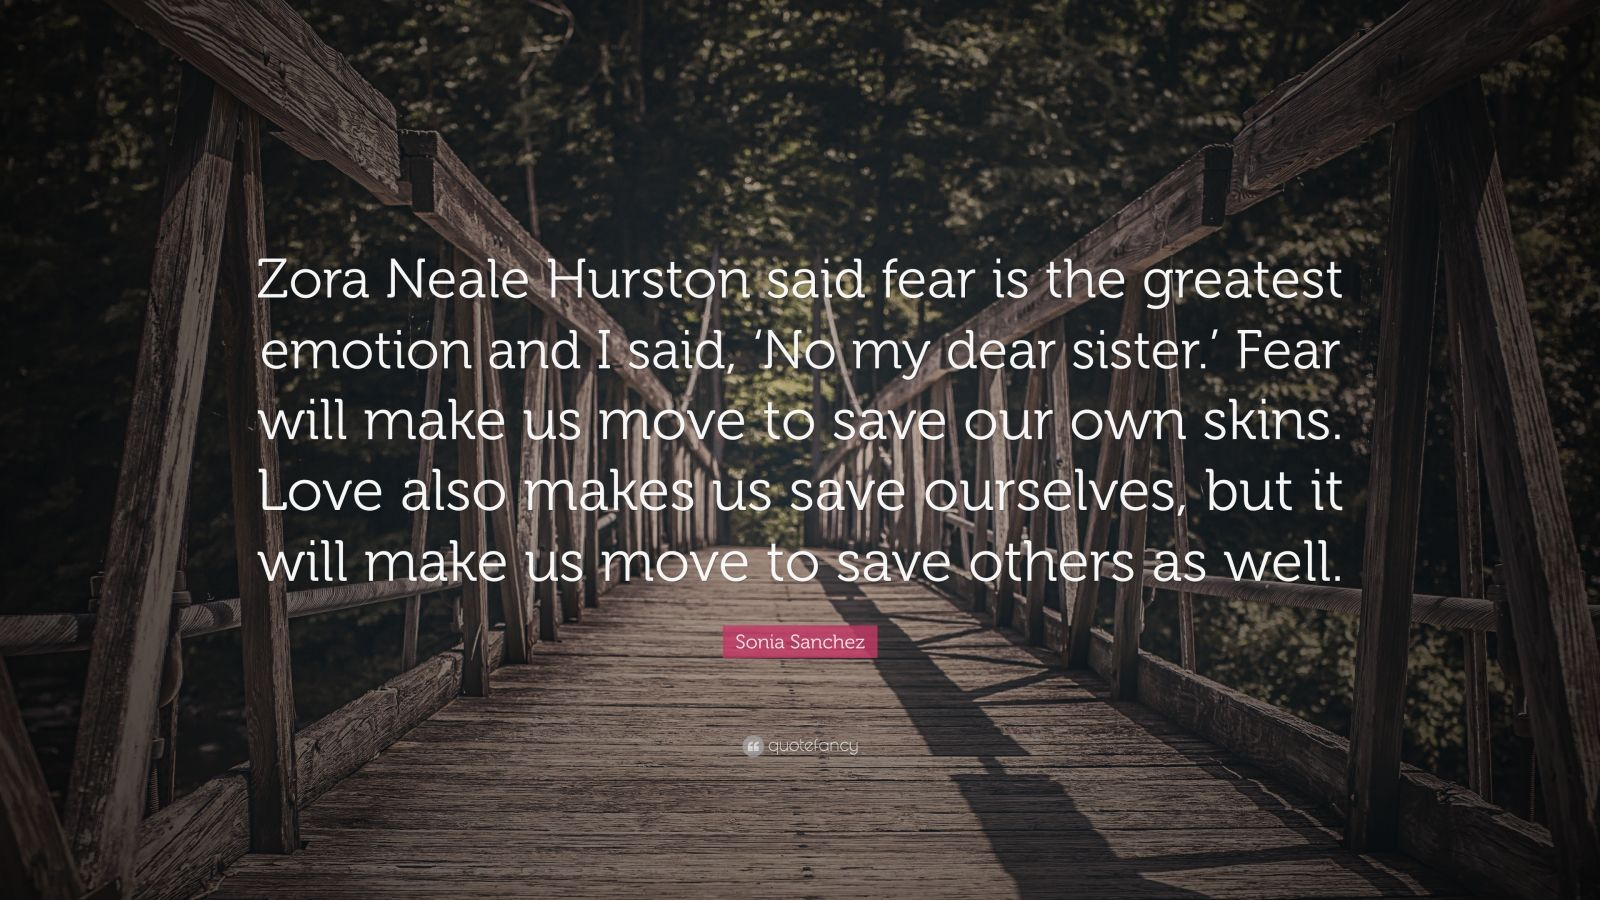 """Sonia Sanchez Quote: """"Zora Neale Hurston said fear is the greatest emotion and I said, 'No my dear sister.' Fear will make us move to save our own skins. Love also makes us save ourselves, but it will make us move to save others as well."""""""